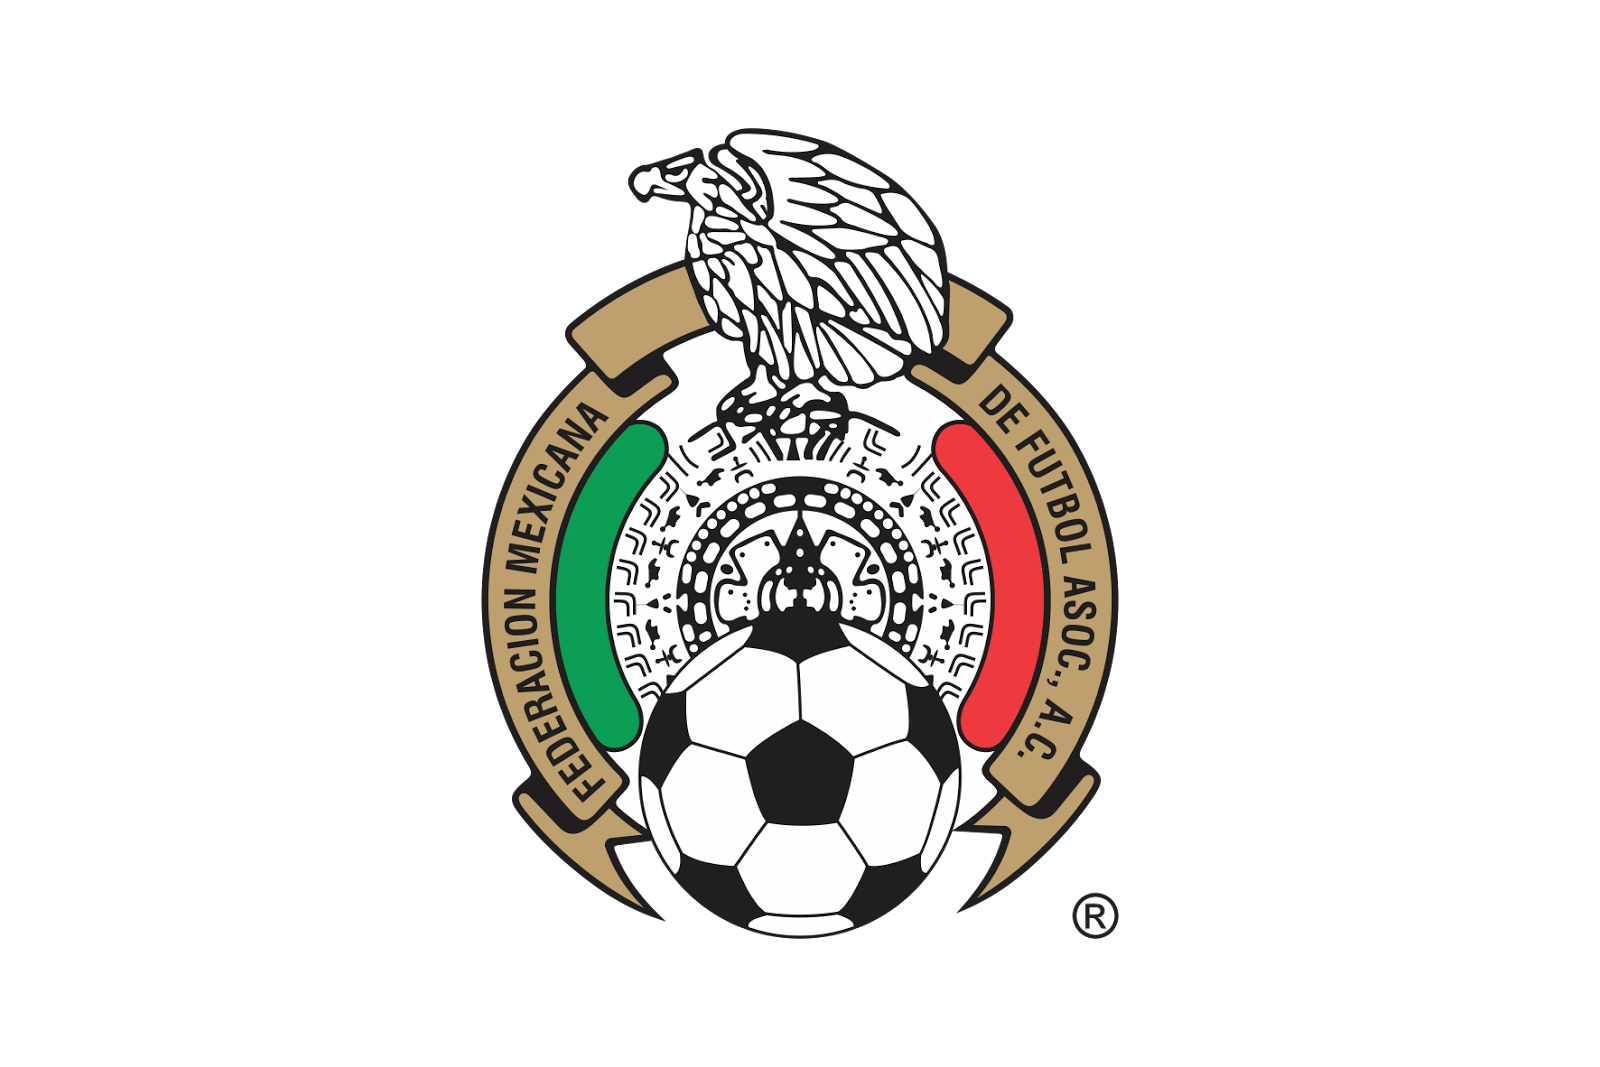 Mexican federation of association football logo for Mexican logos images